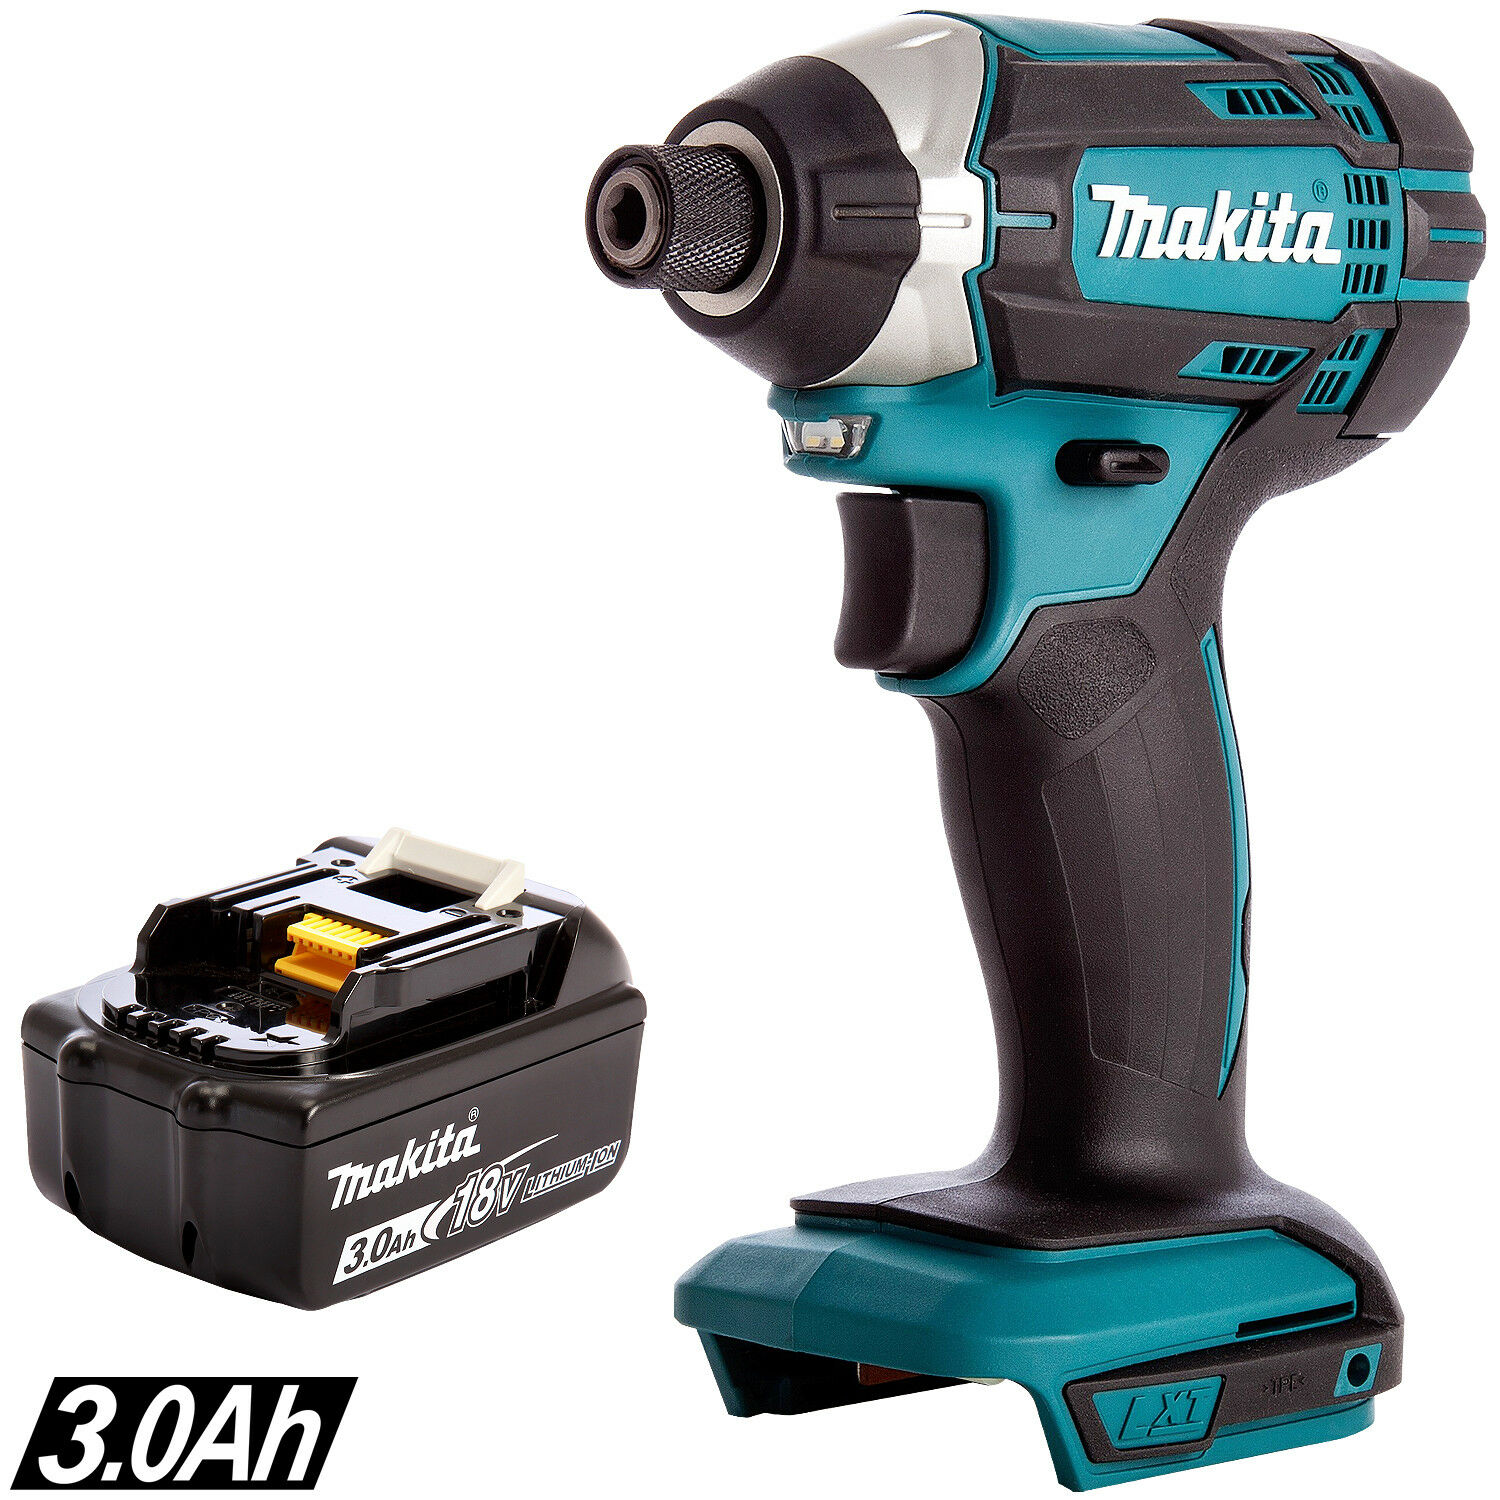 Makita DTD154Z 18V LXT Brushless Impact Driver With 1 x 3.0Ah BL1830 Battery